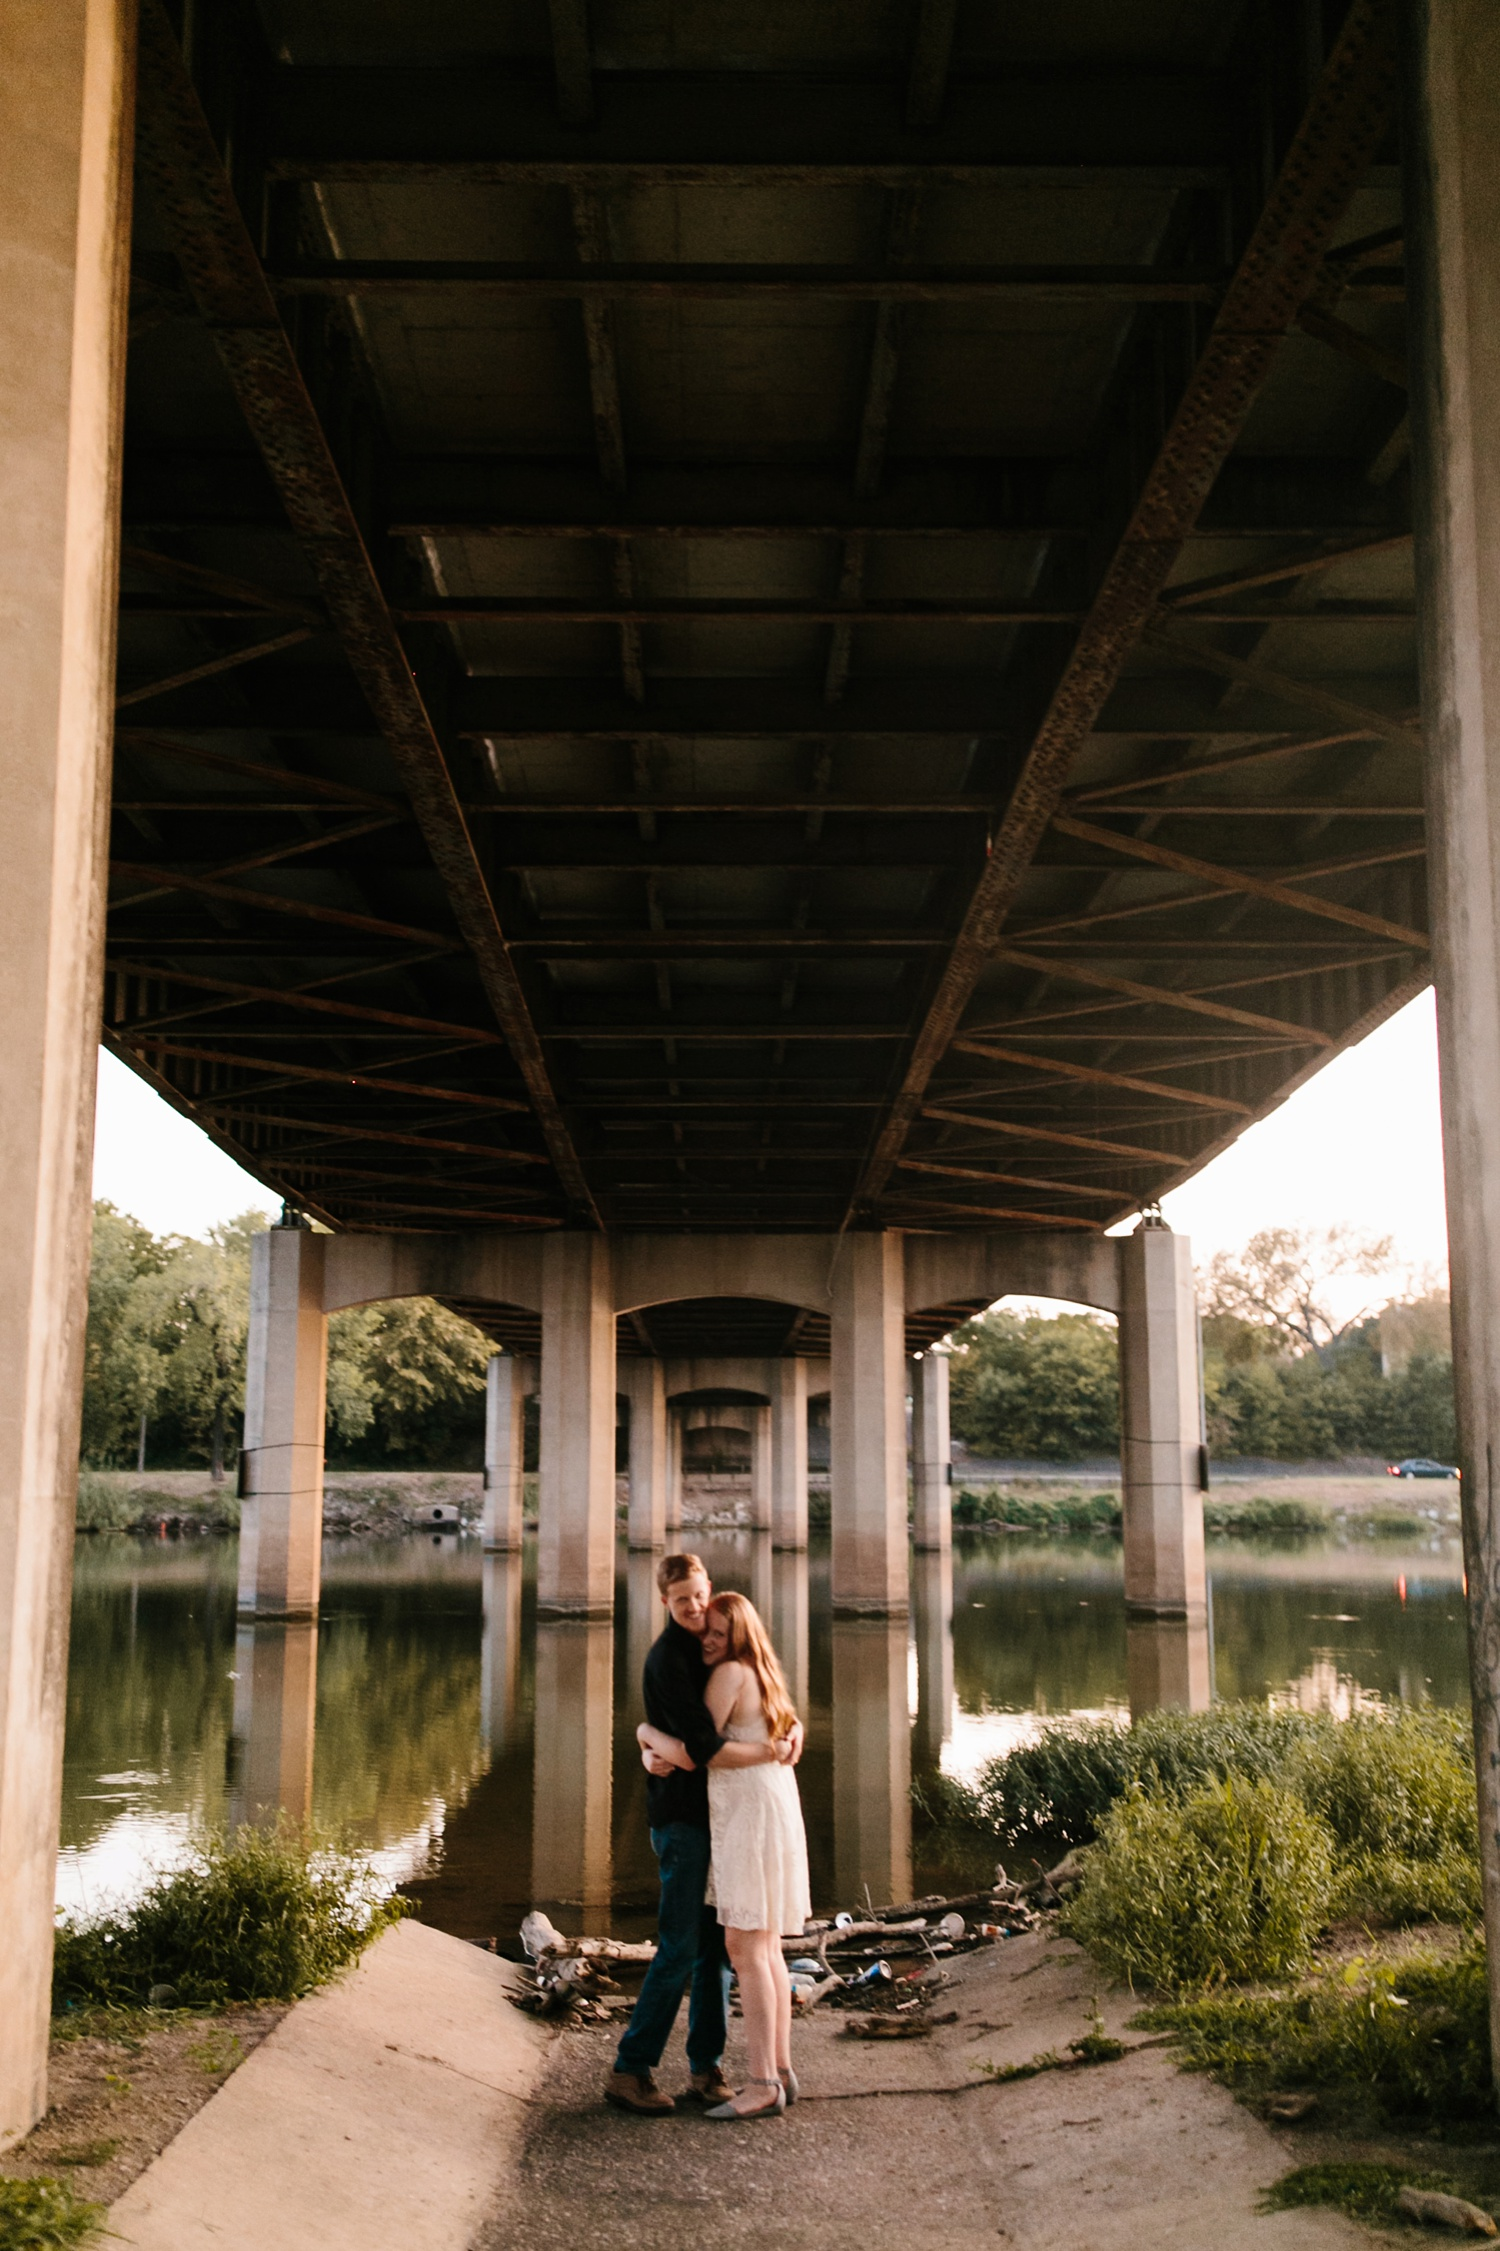 Kayla + Alex _ a joyful and loving engagement shoot in Waco, Texas by North Texas Wedding Photographer Rachel Meagan Photography _67